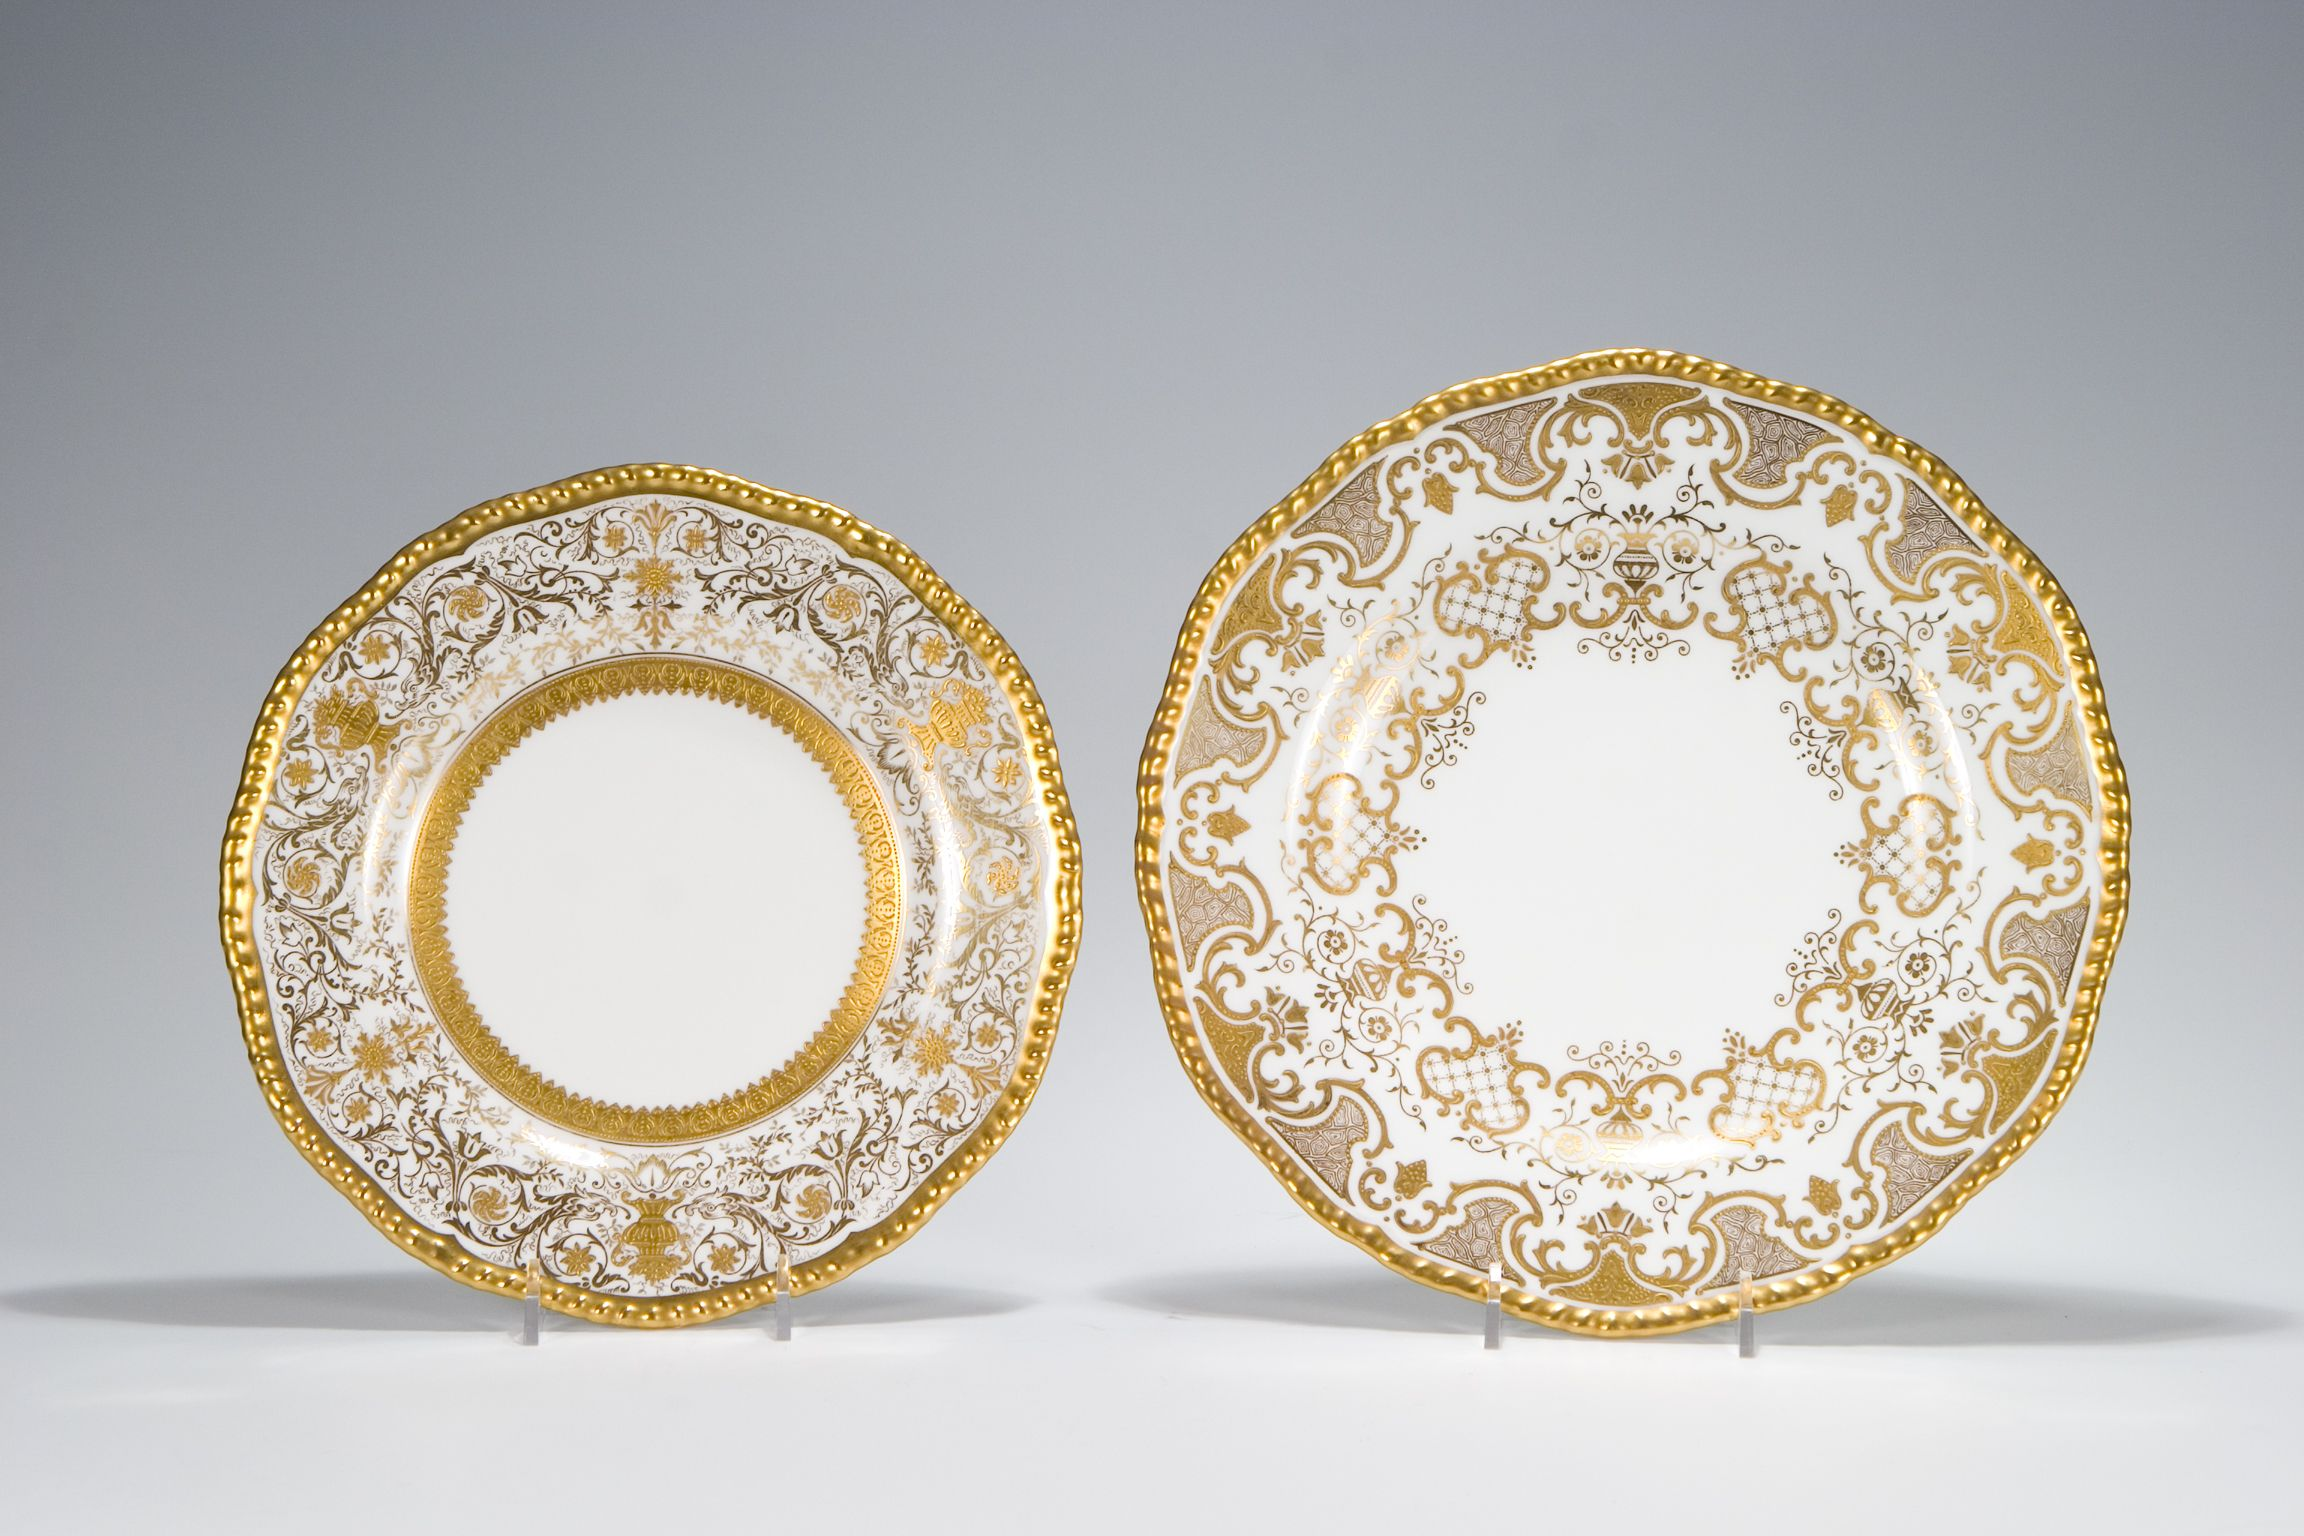 12 Coalport Ornate Raised Paste Gold \u0026 White Dessert Plates \u0026 12 Coalport Ornate Raised Paste Gold/White Dinner Plates & 12 Coalport Ornate Raised Paste Gold \u0026 White Dessert Plates \u0026 12 ...